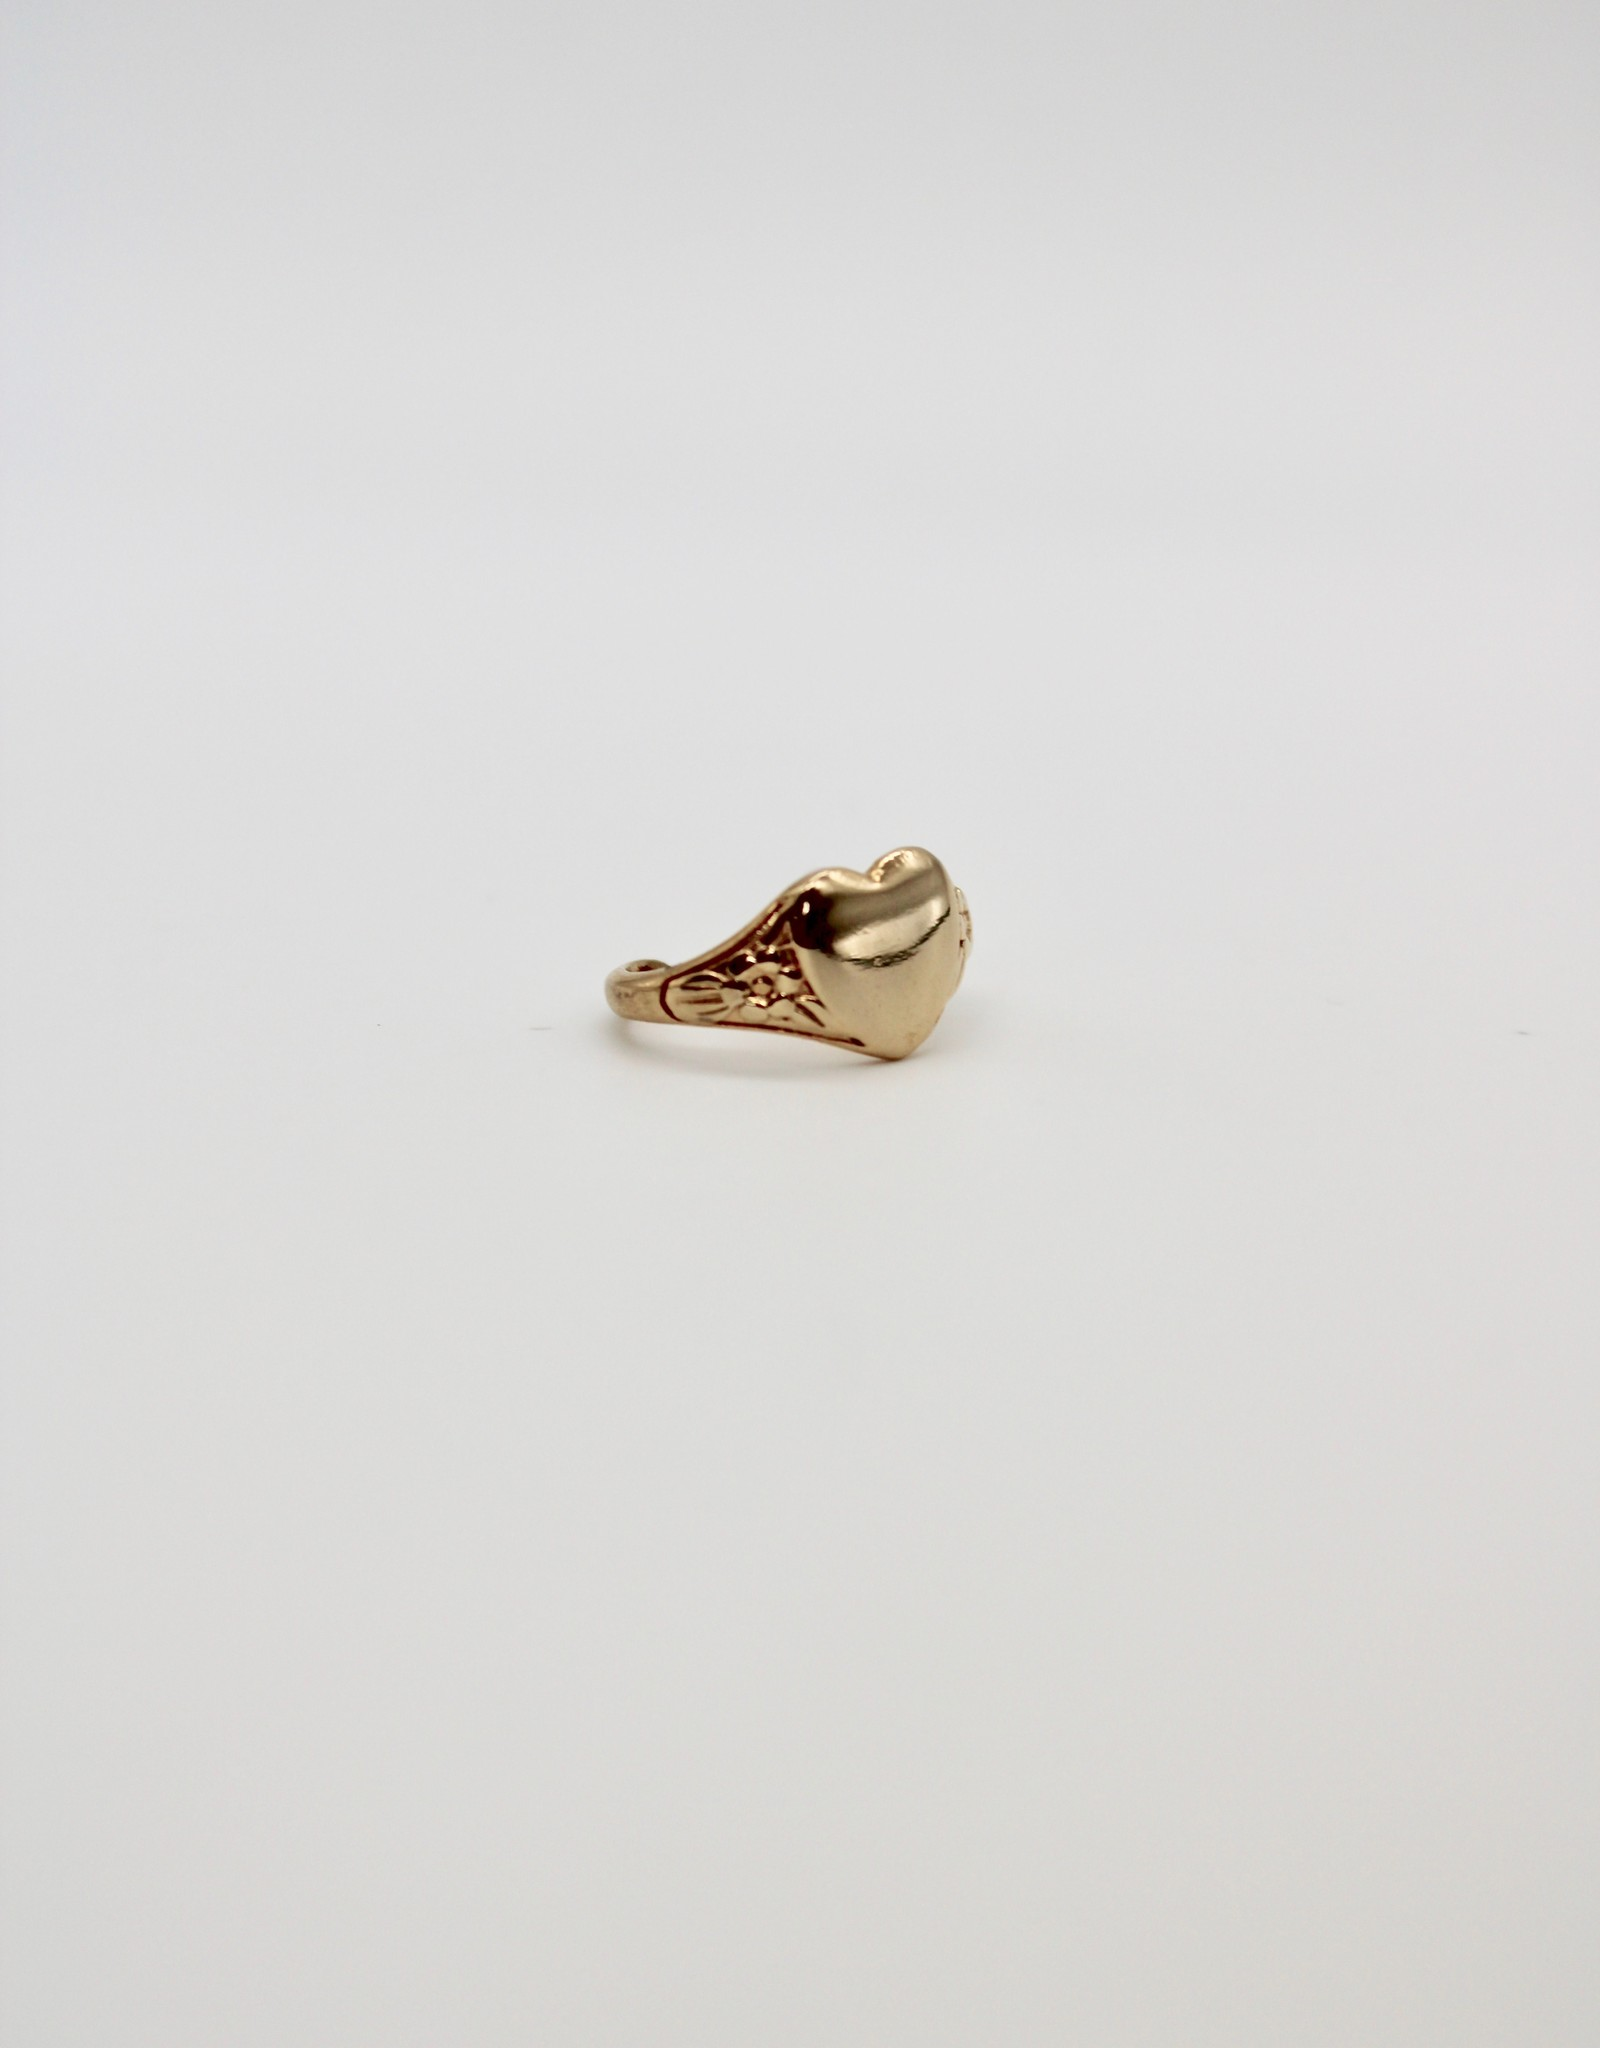 Madison Richey MR260 Gold Filled Heart Ring